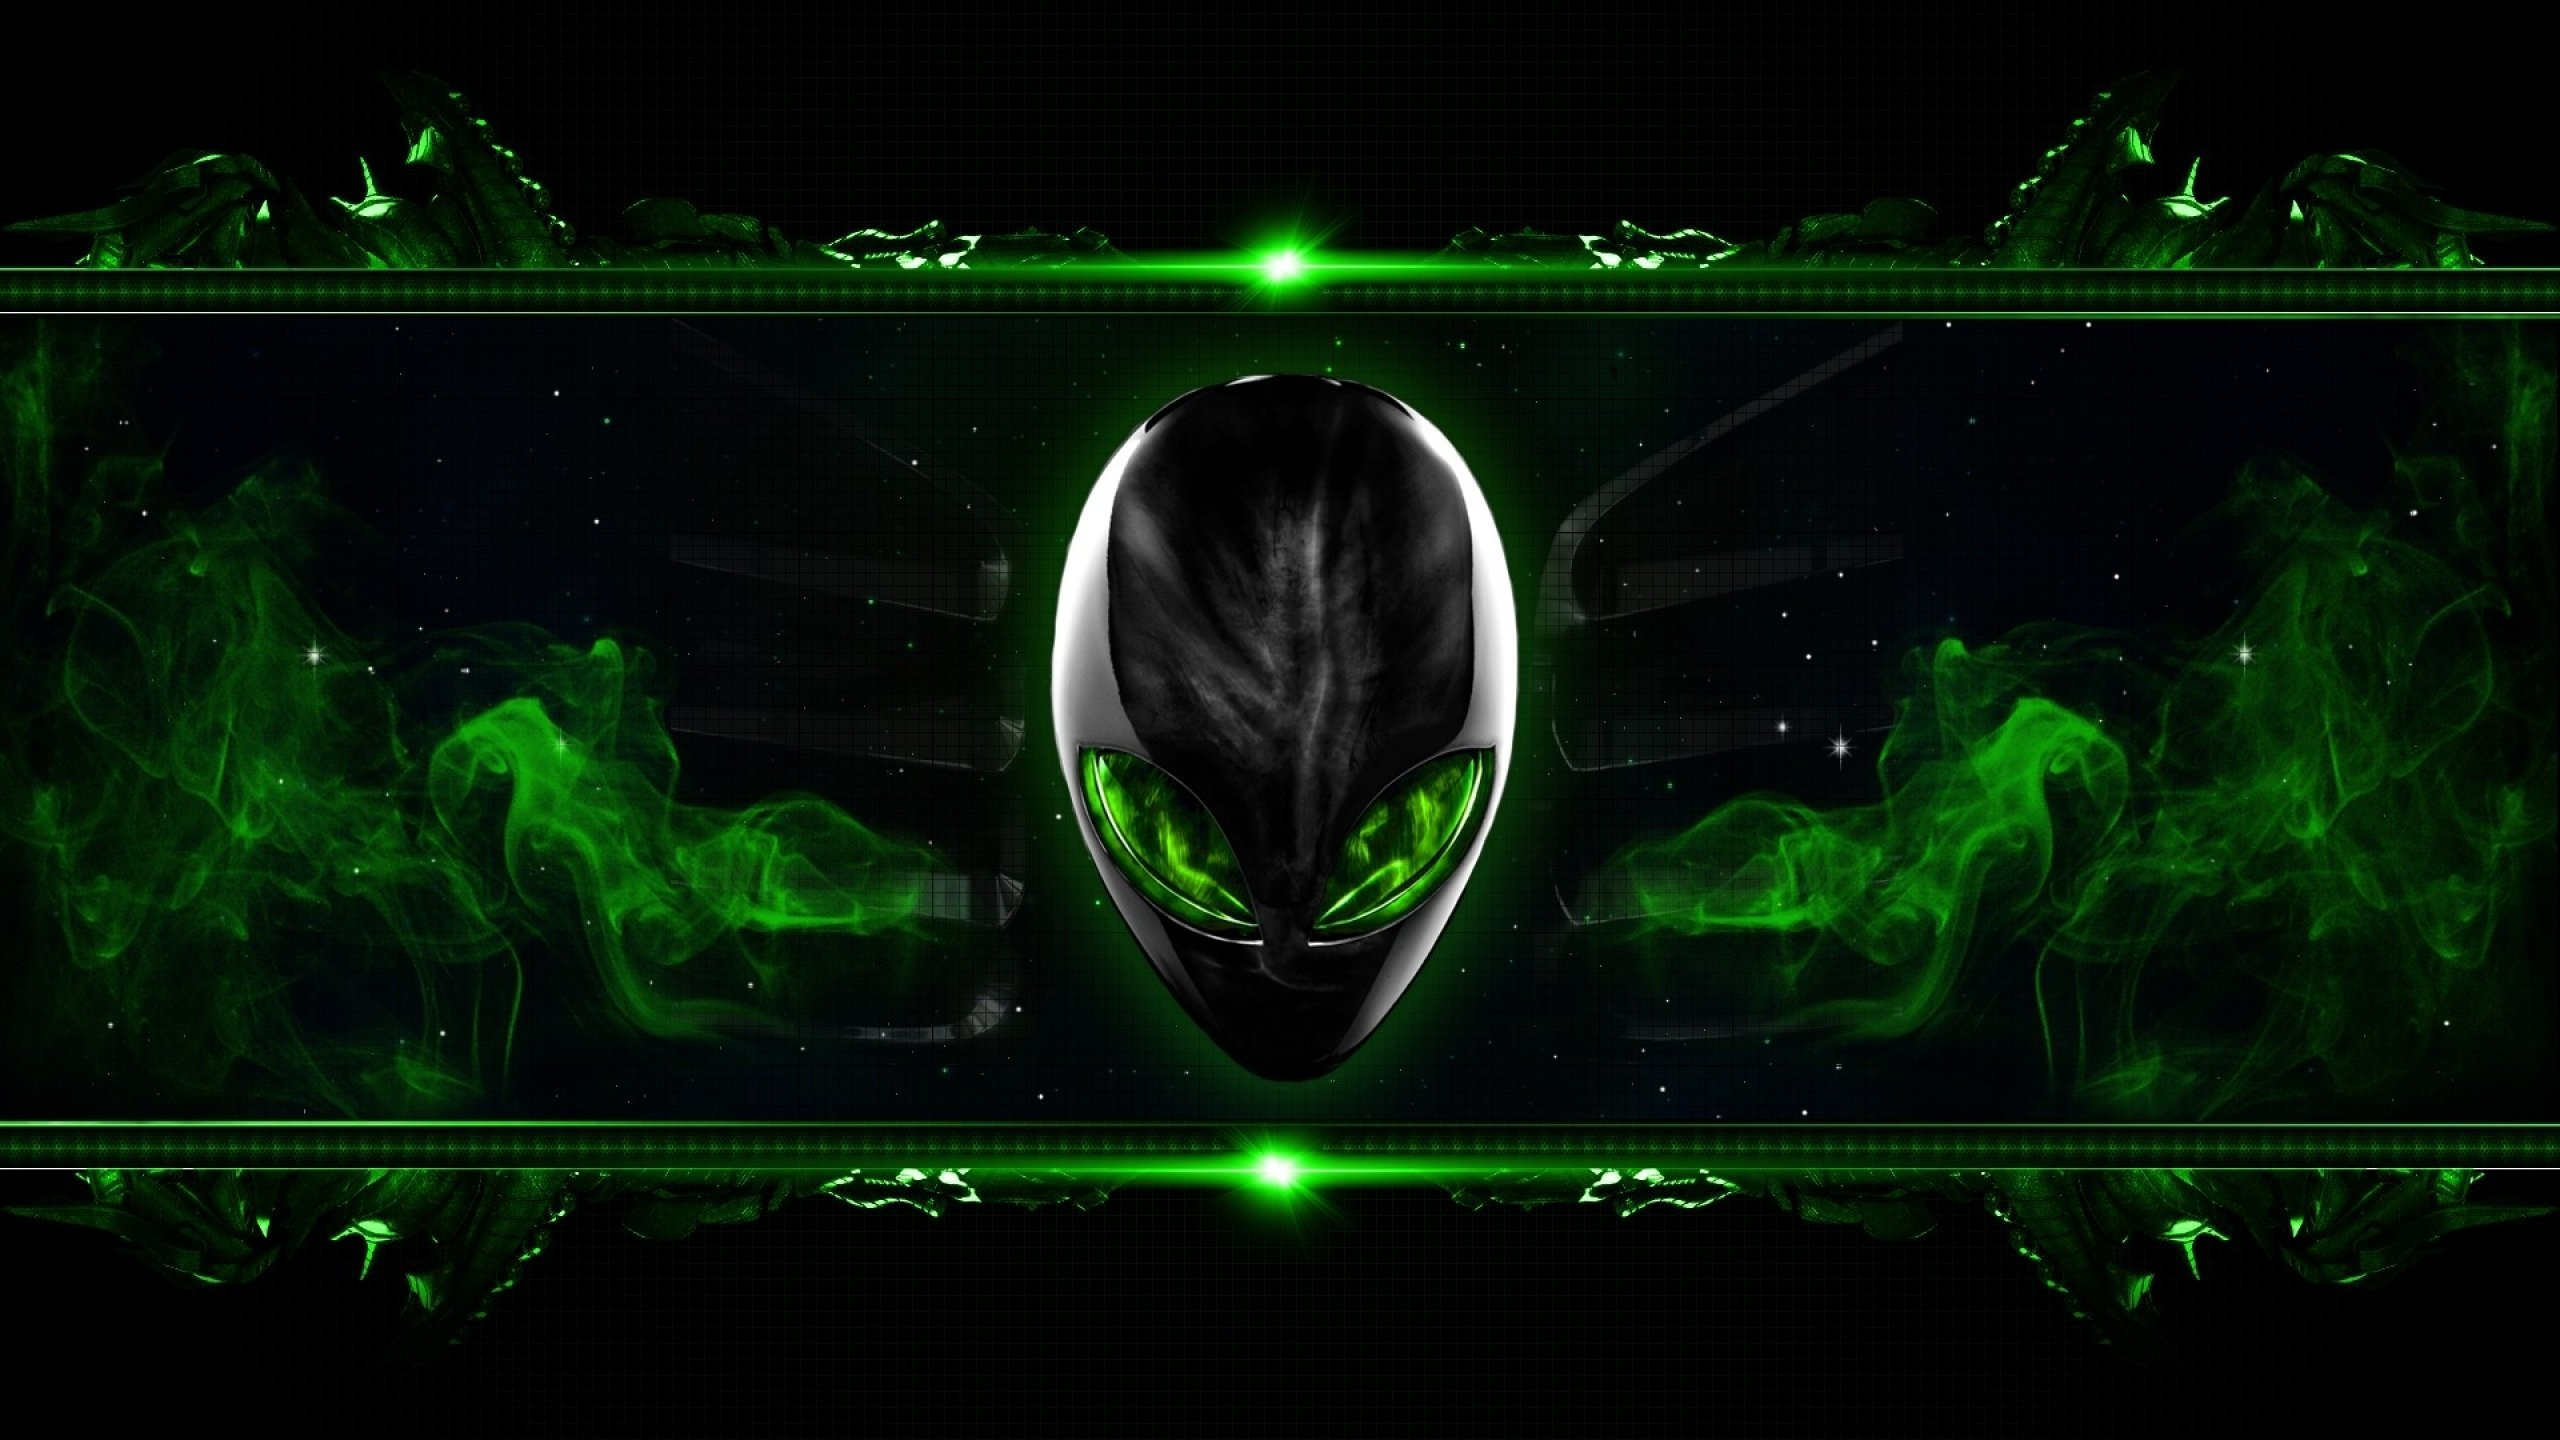 Awesome Alienware free wallpaper ID:385820 for hd 2560x1440 desktop